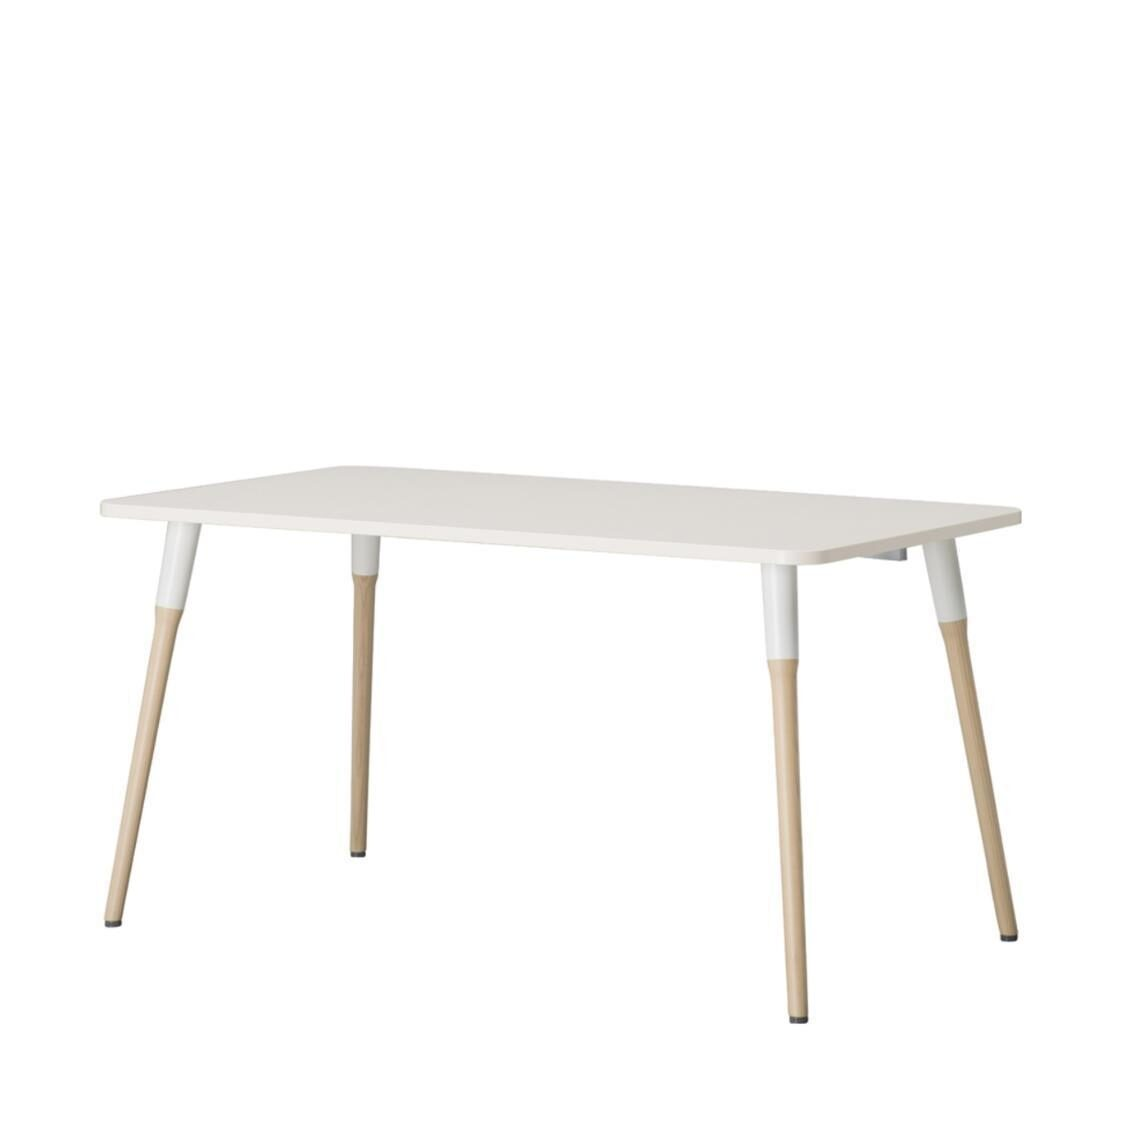 iloom Rema 1400W Table IV Ivory